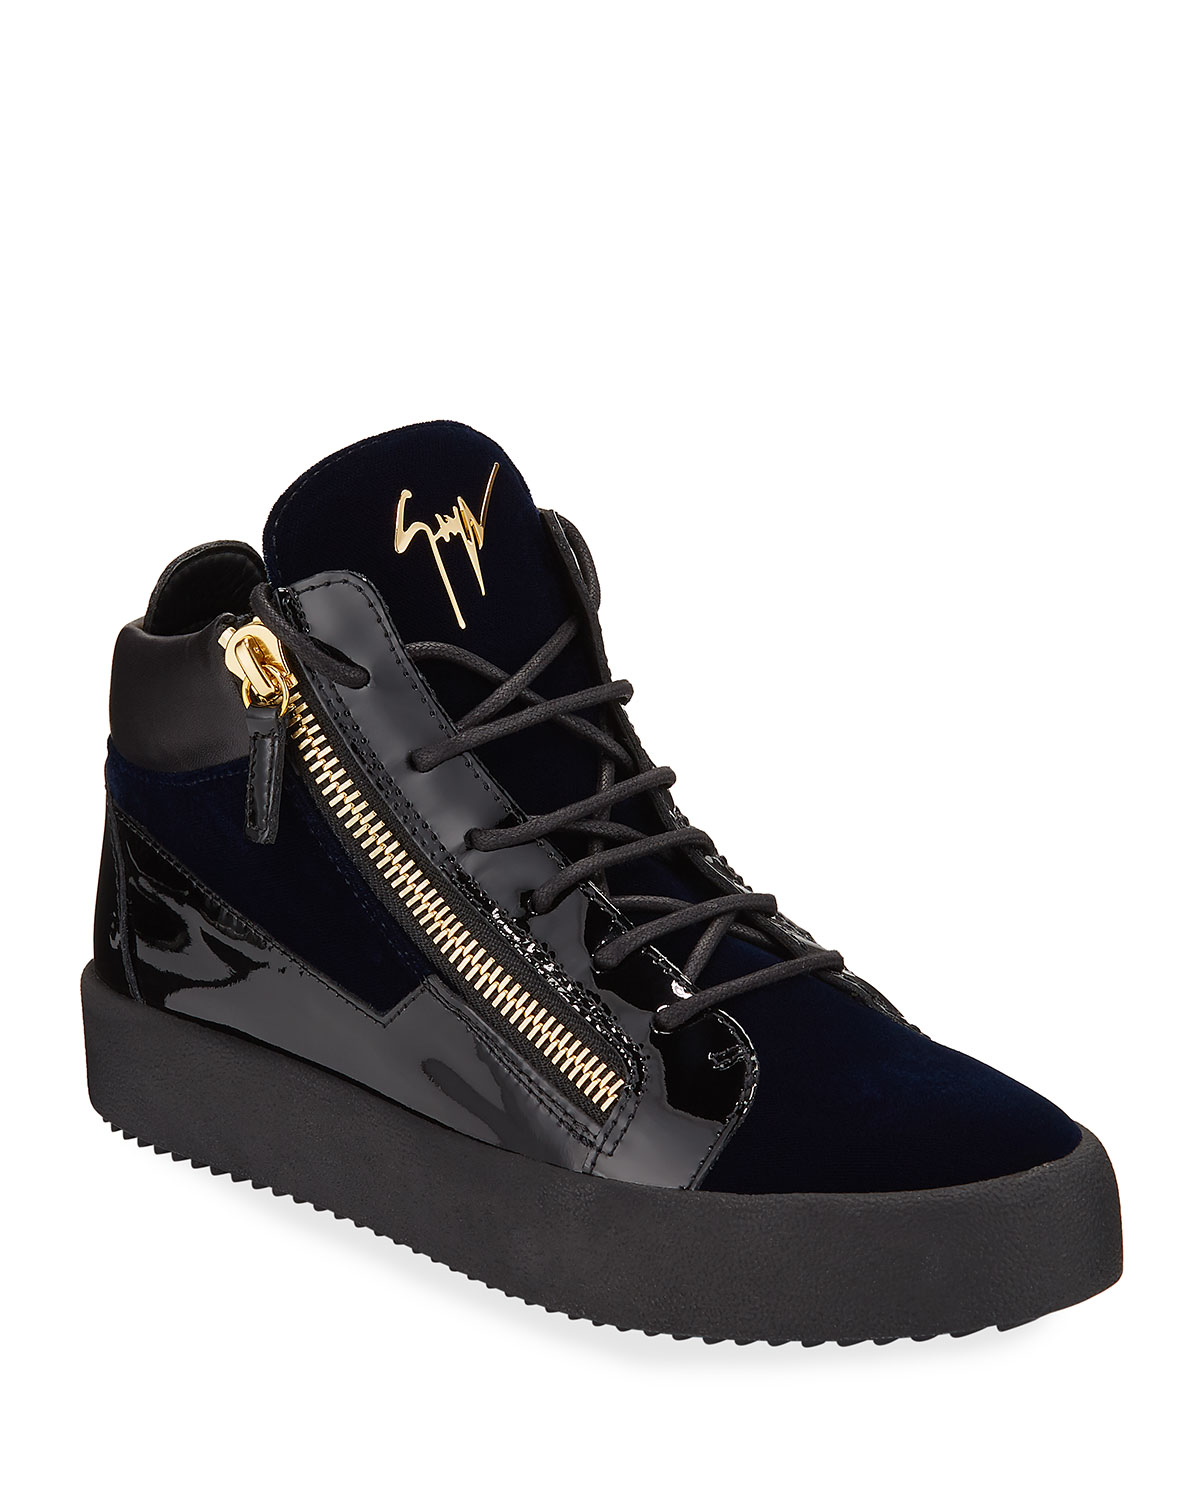 d286abfe96dd6 Giuseppe Zanotti Men's Velvet & Patent Leather Mid-Top Sneakers ...